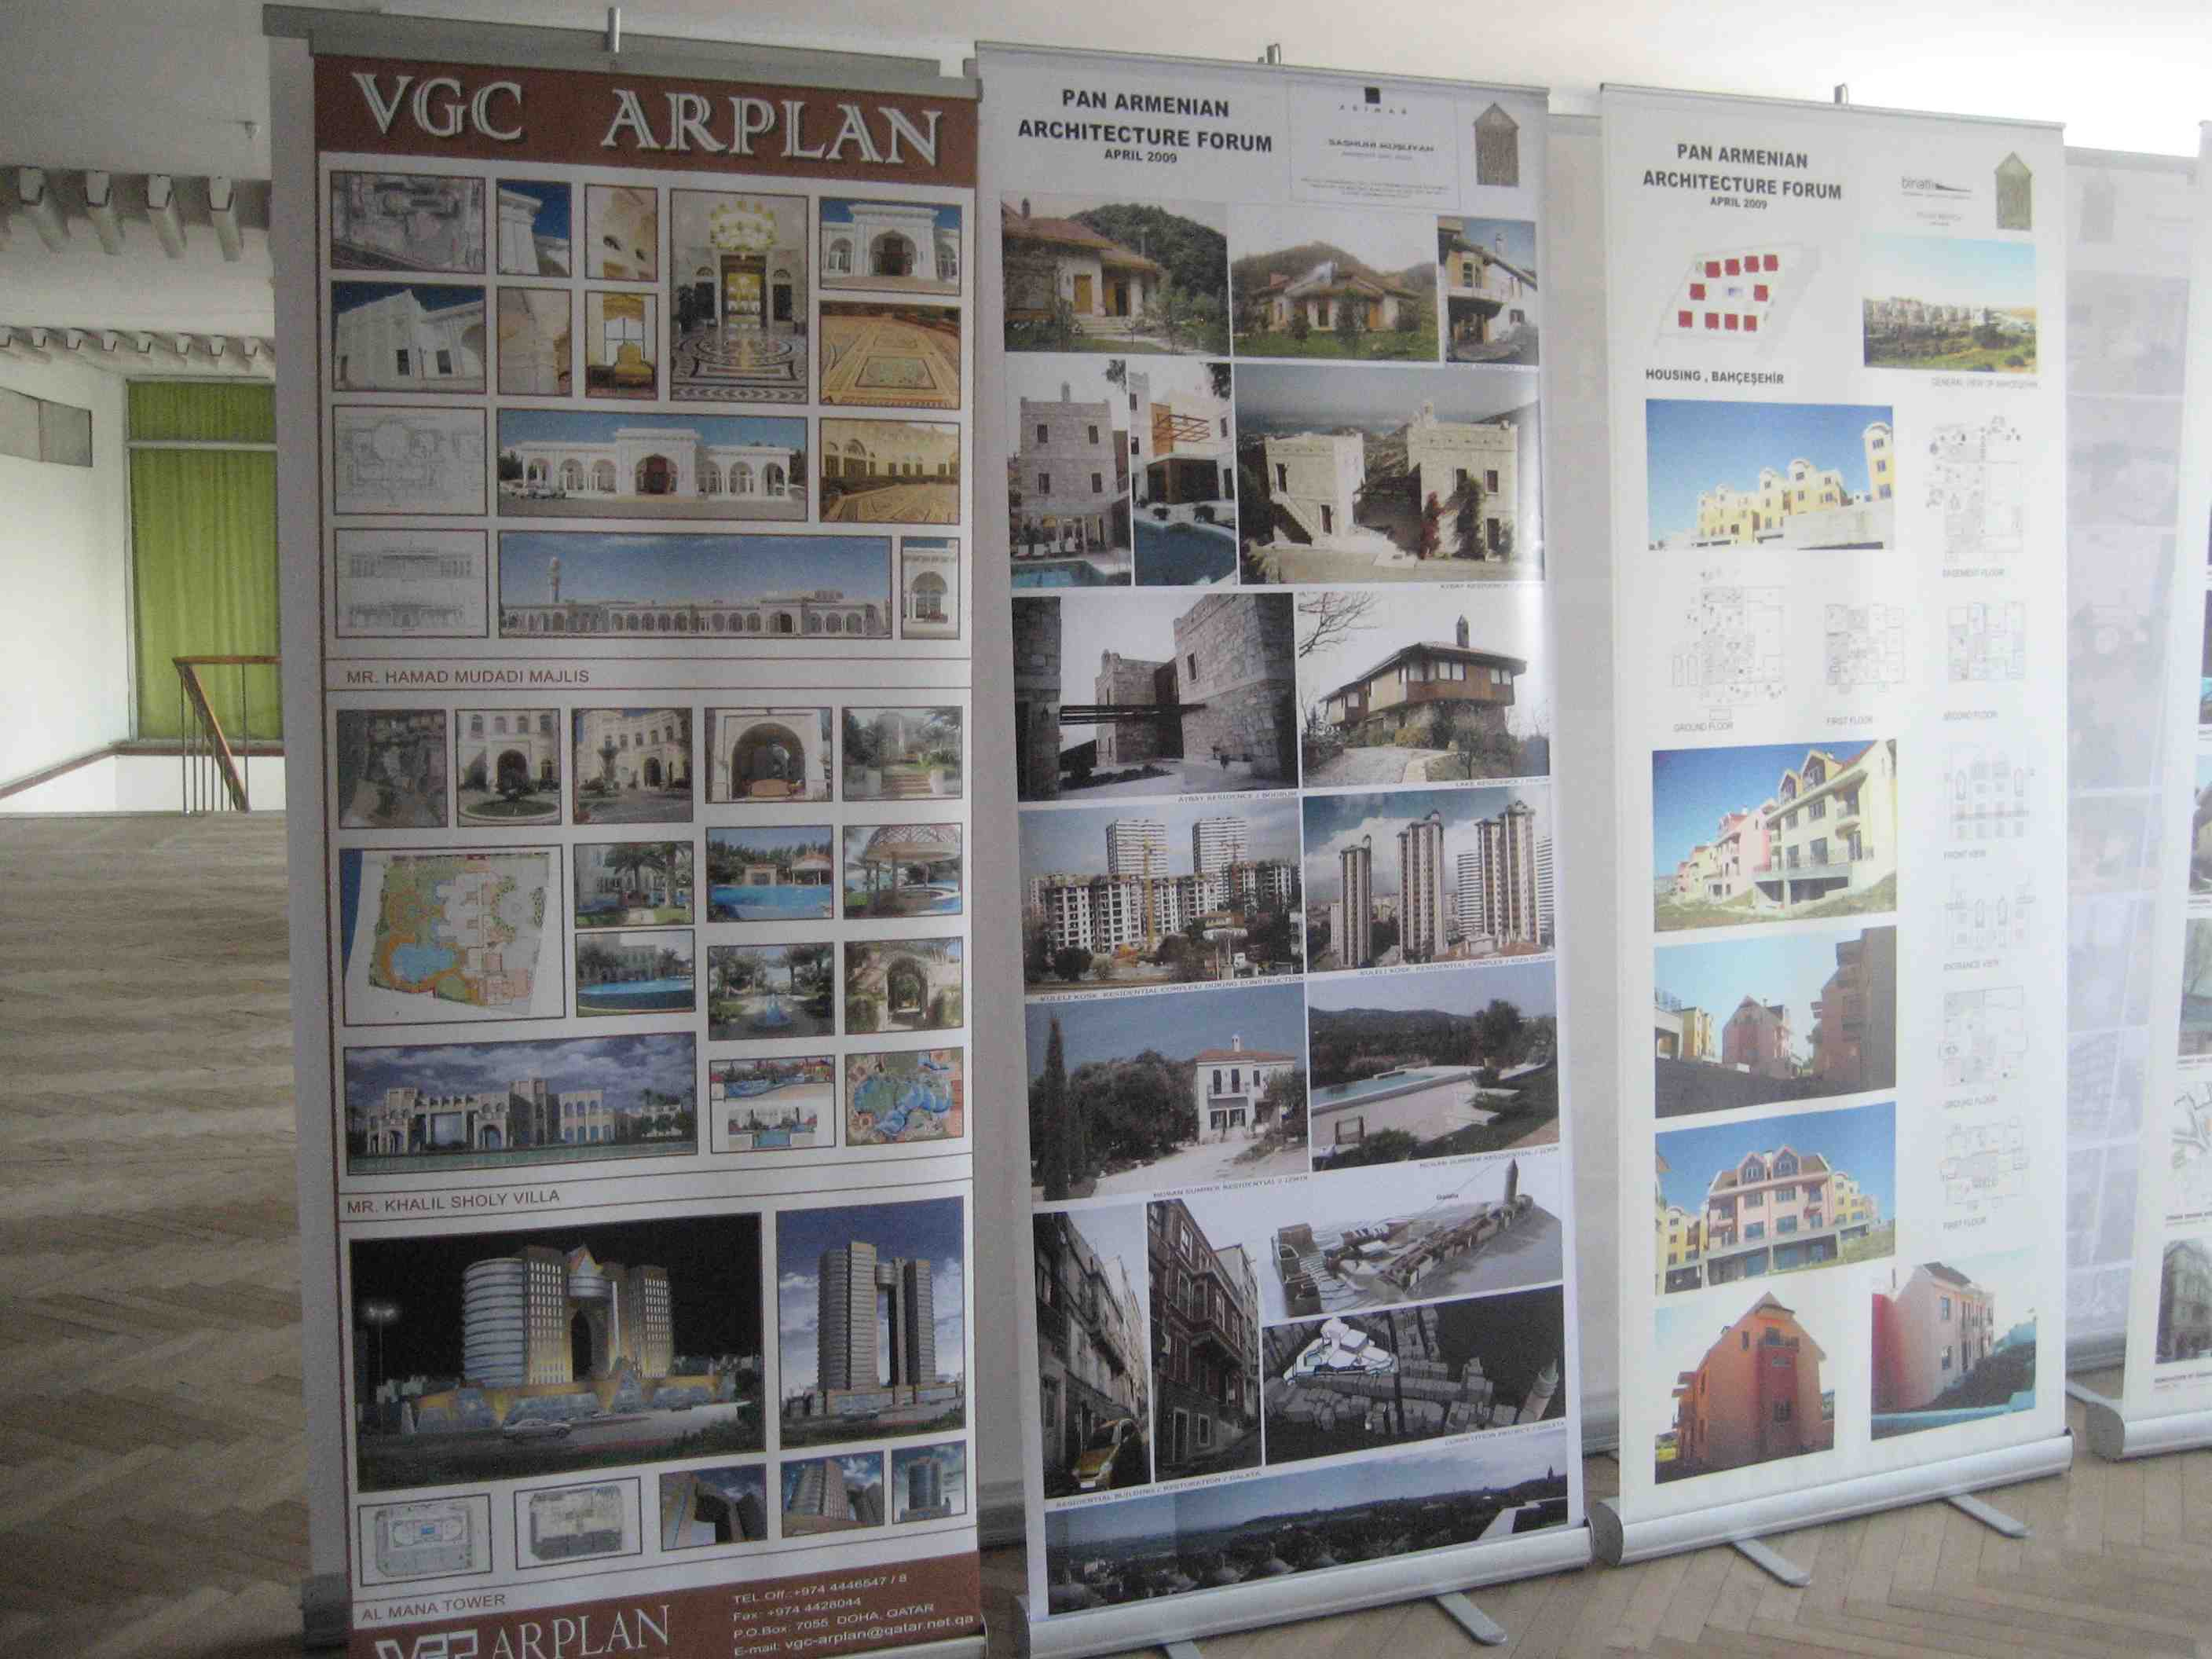 Pan Armenian Architectural Displays